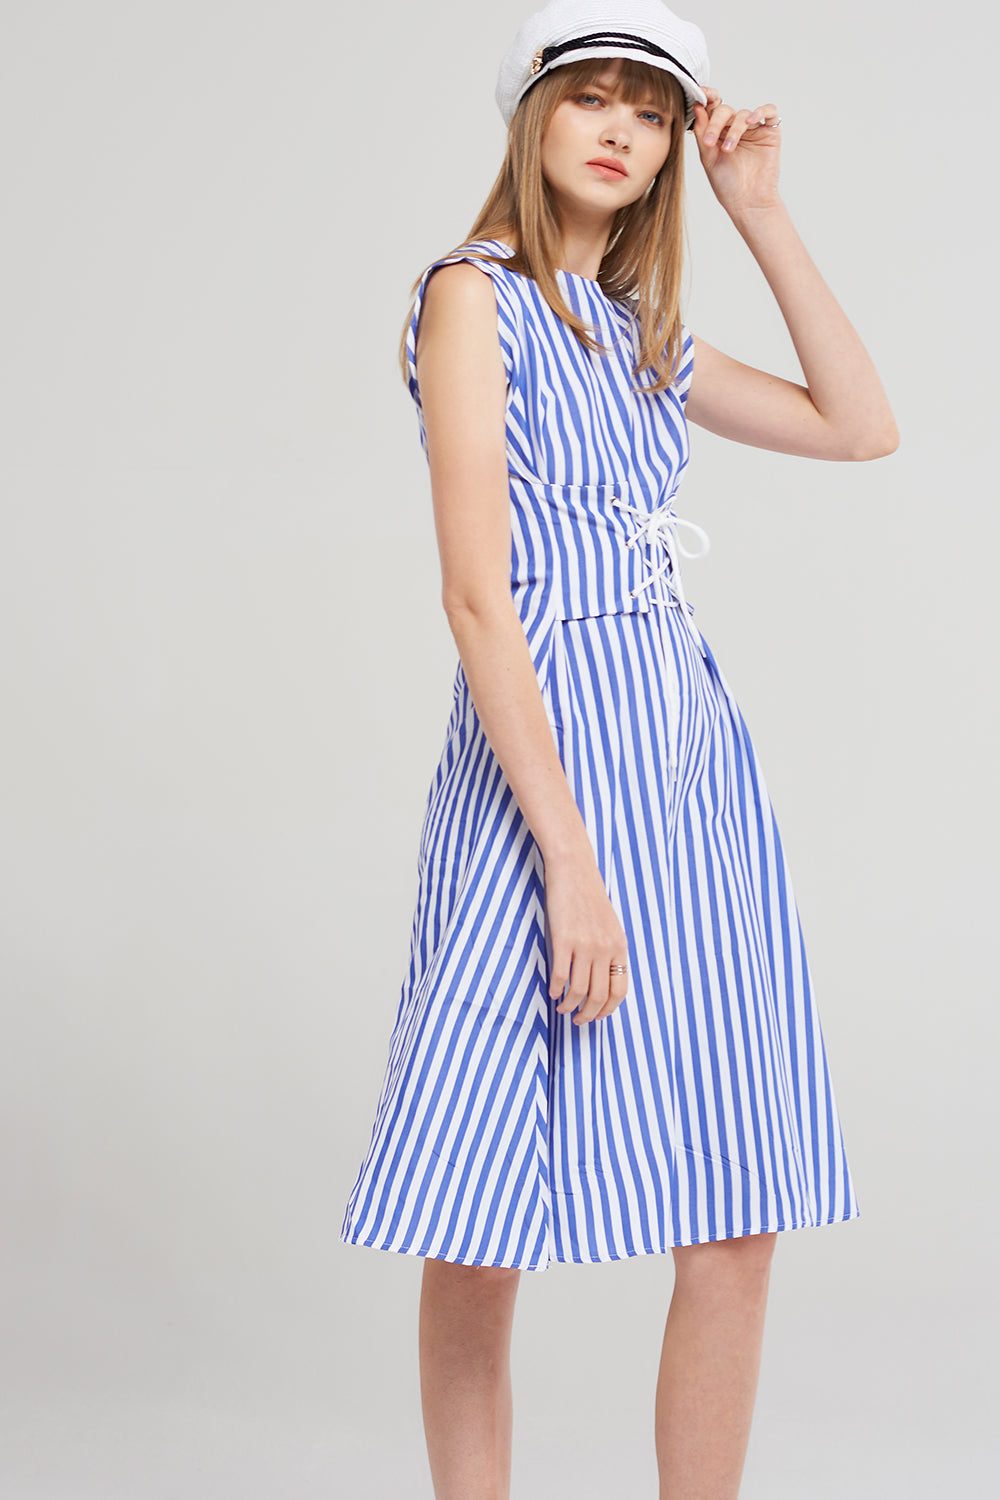 Alexa Blue Stripe Dress